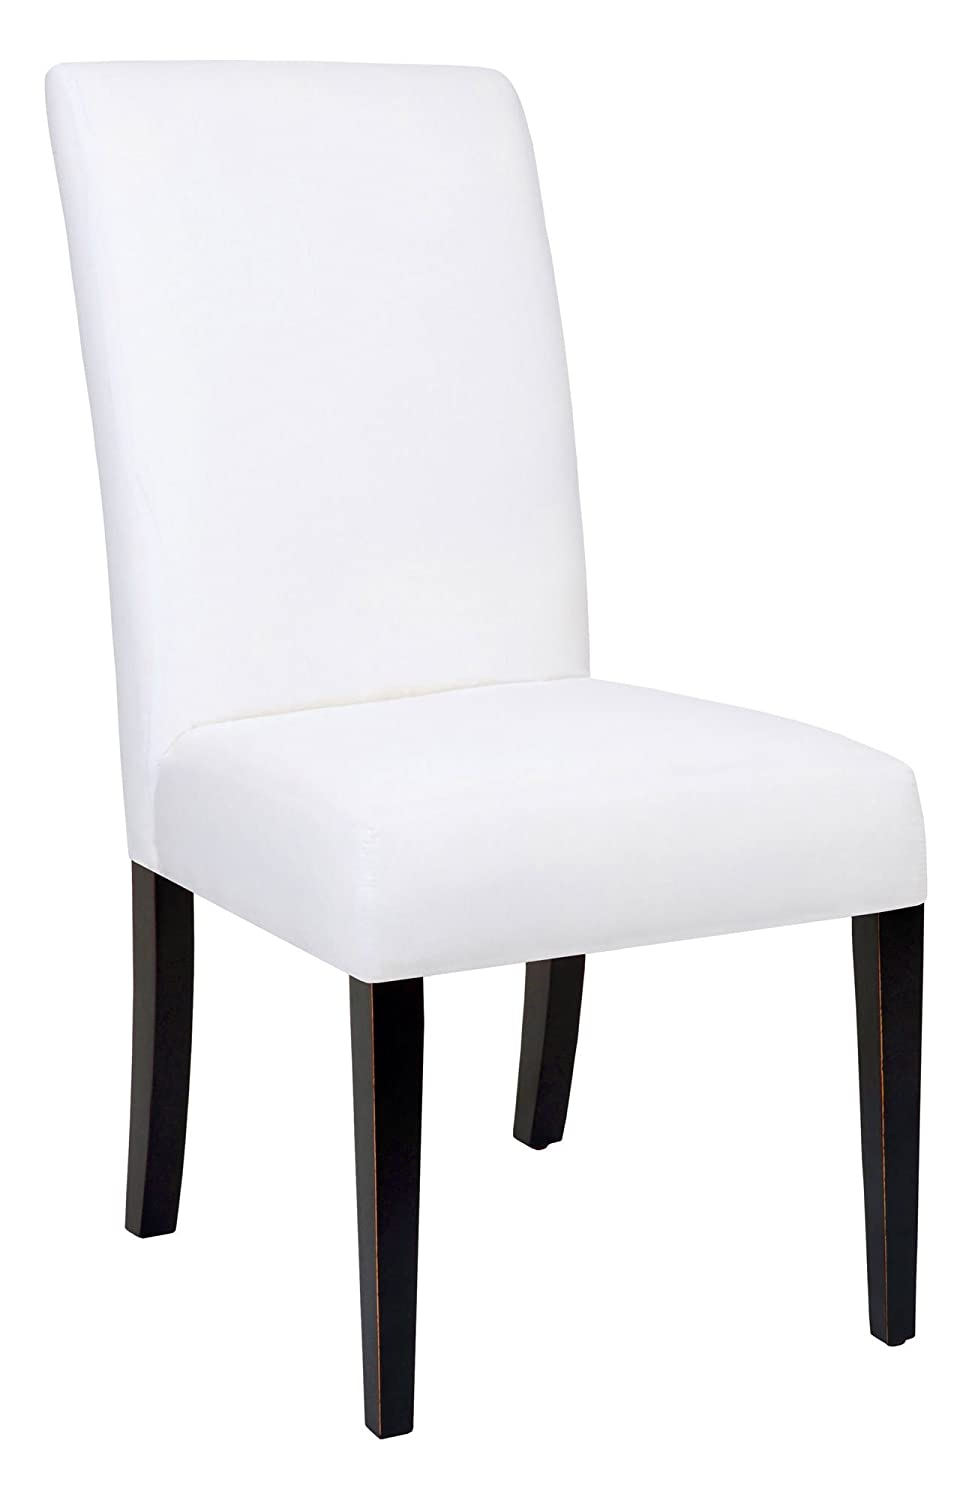 Admirable Amazon Com Sterling 6070884 Couture Covers Plantation Evergreenethics Interior Chair Design Evergreenethicsorg